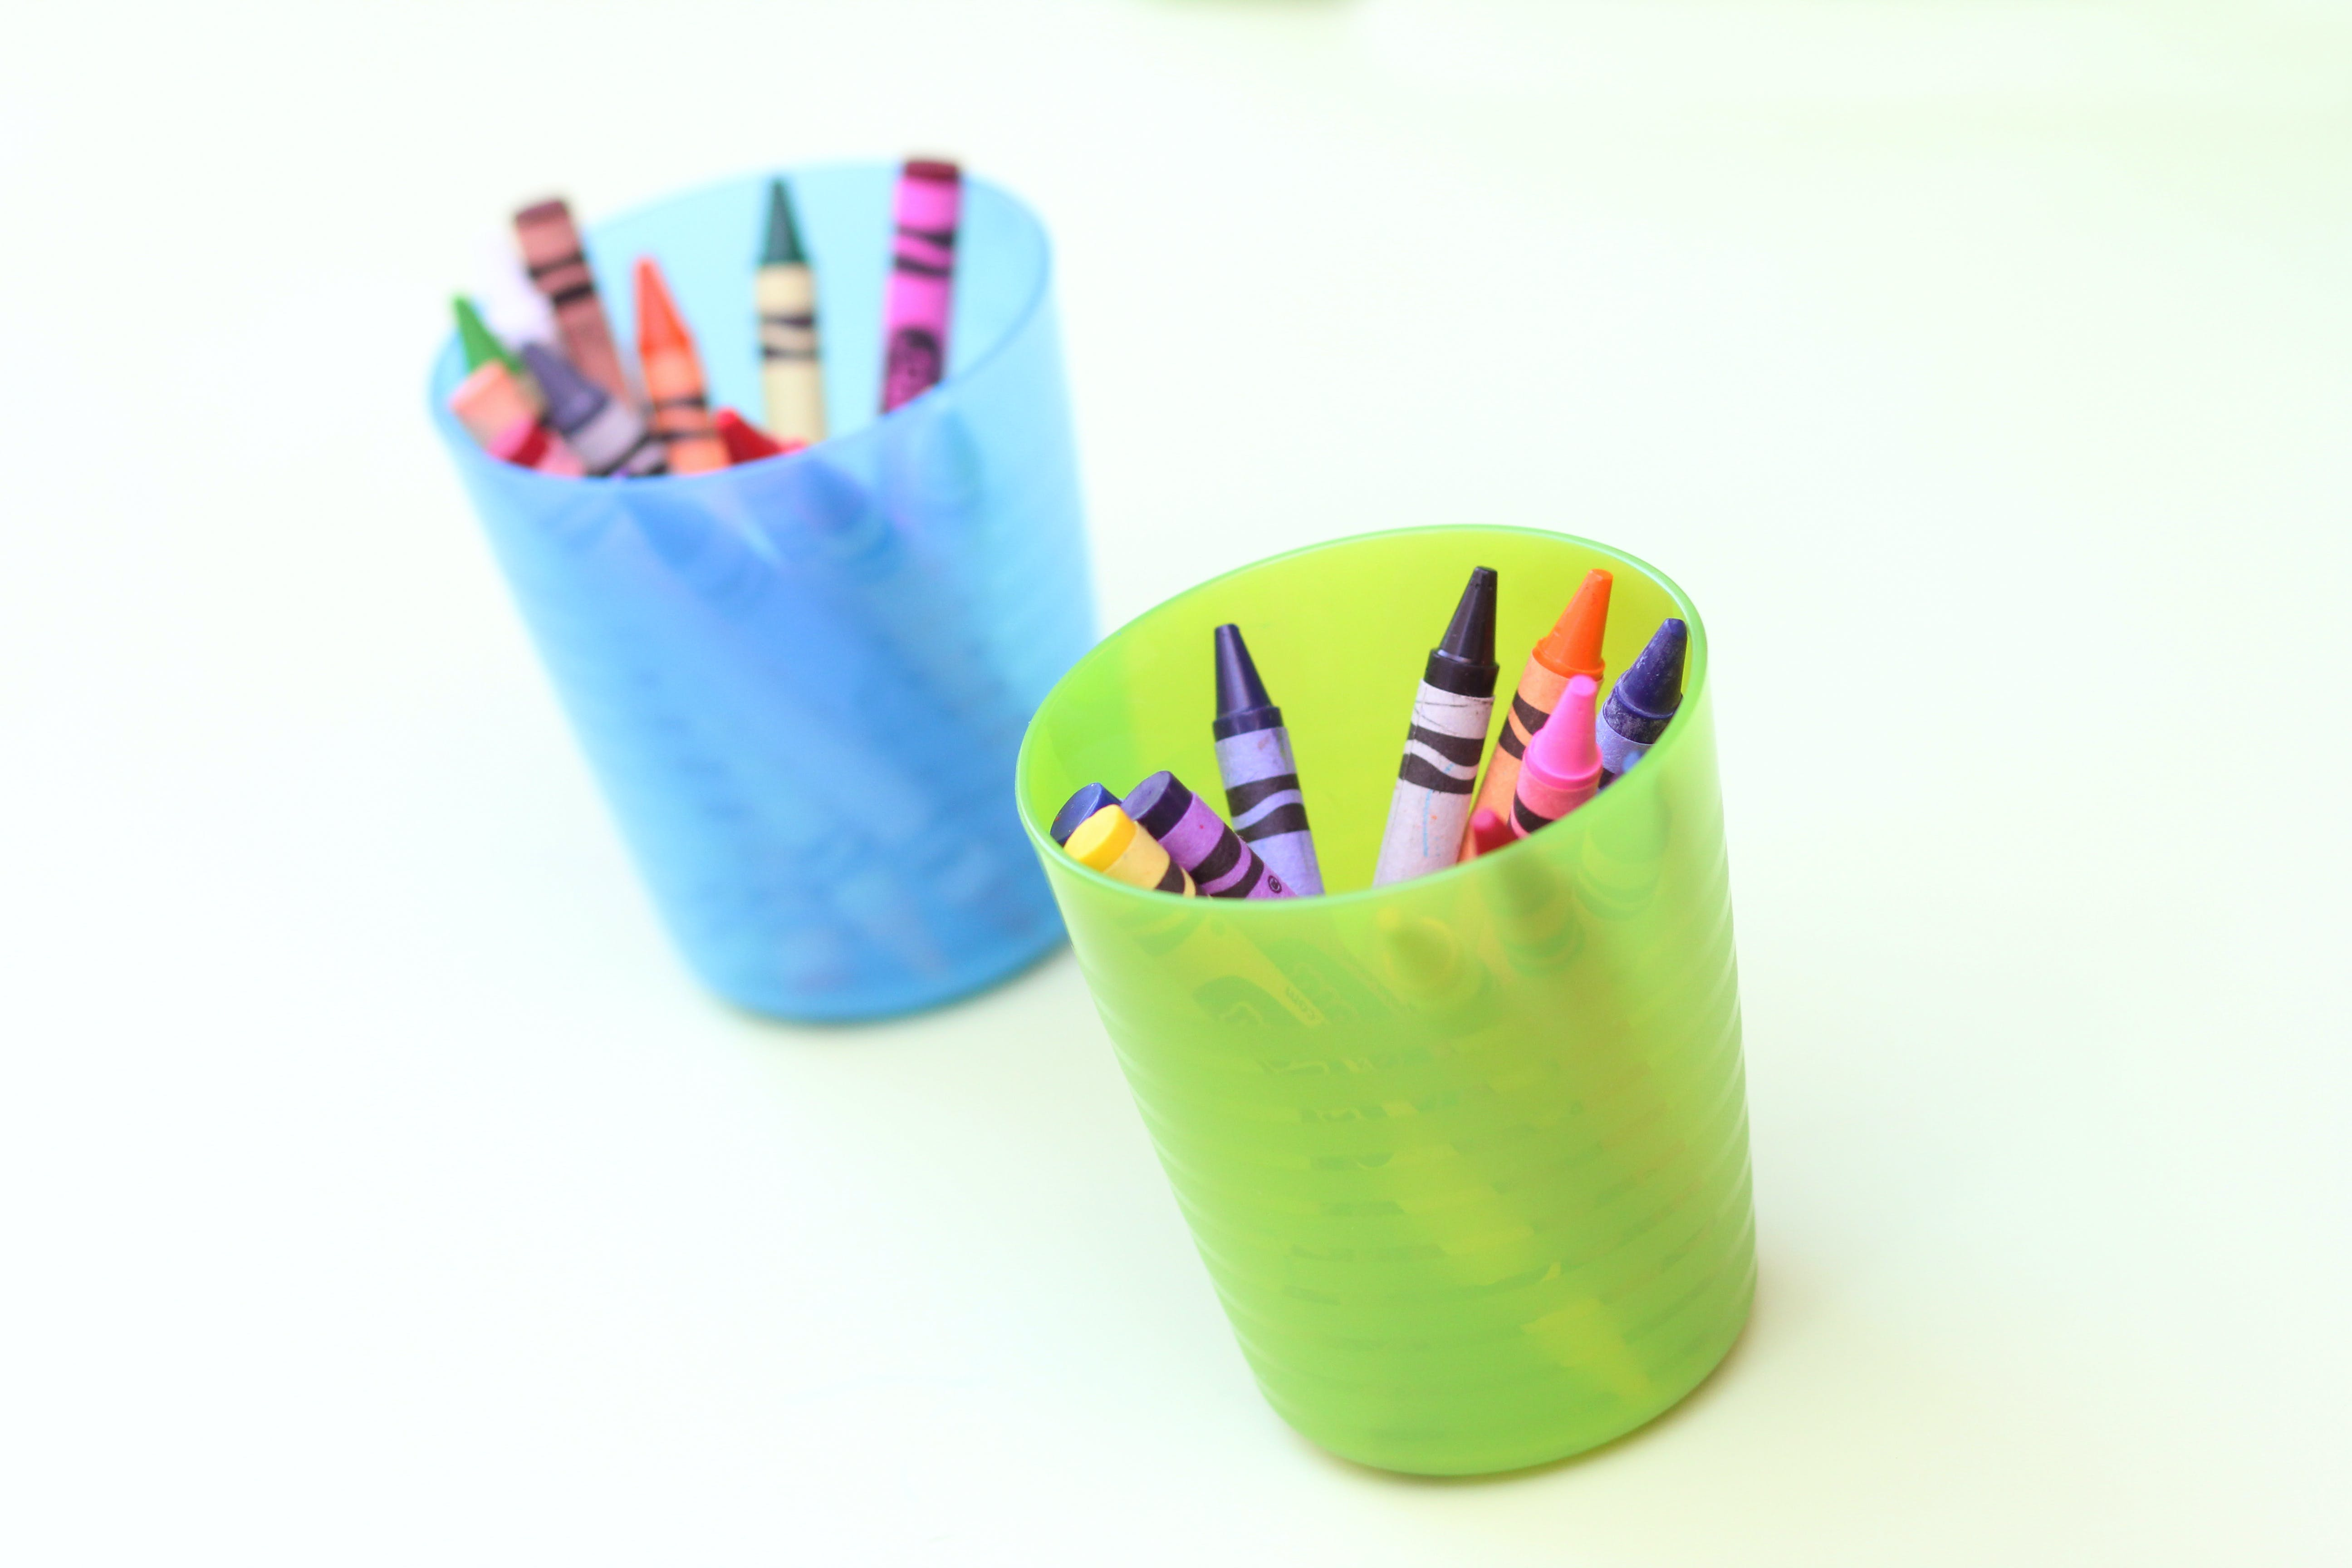 Free stock photo of colored crayons, colorful, crayons, drawing